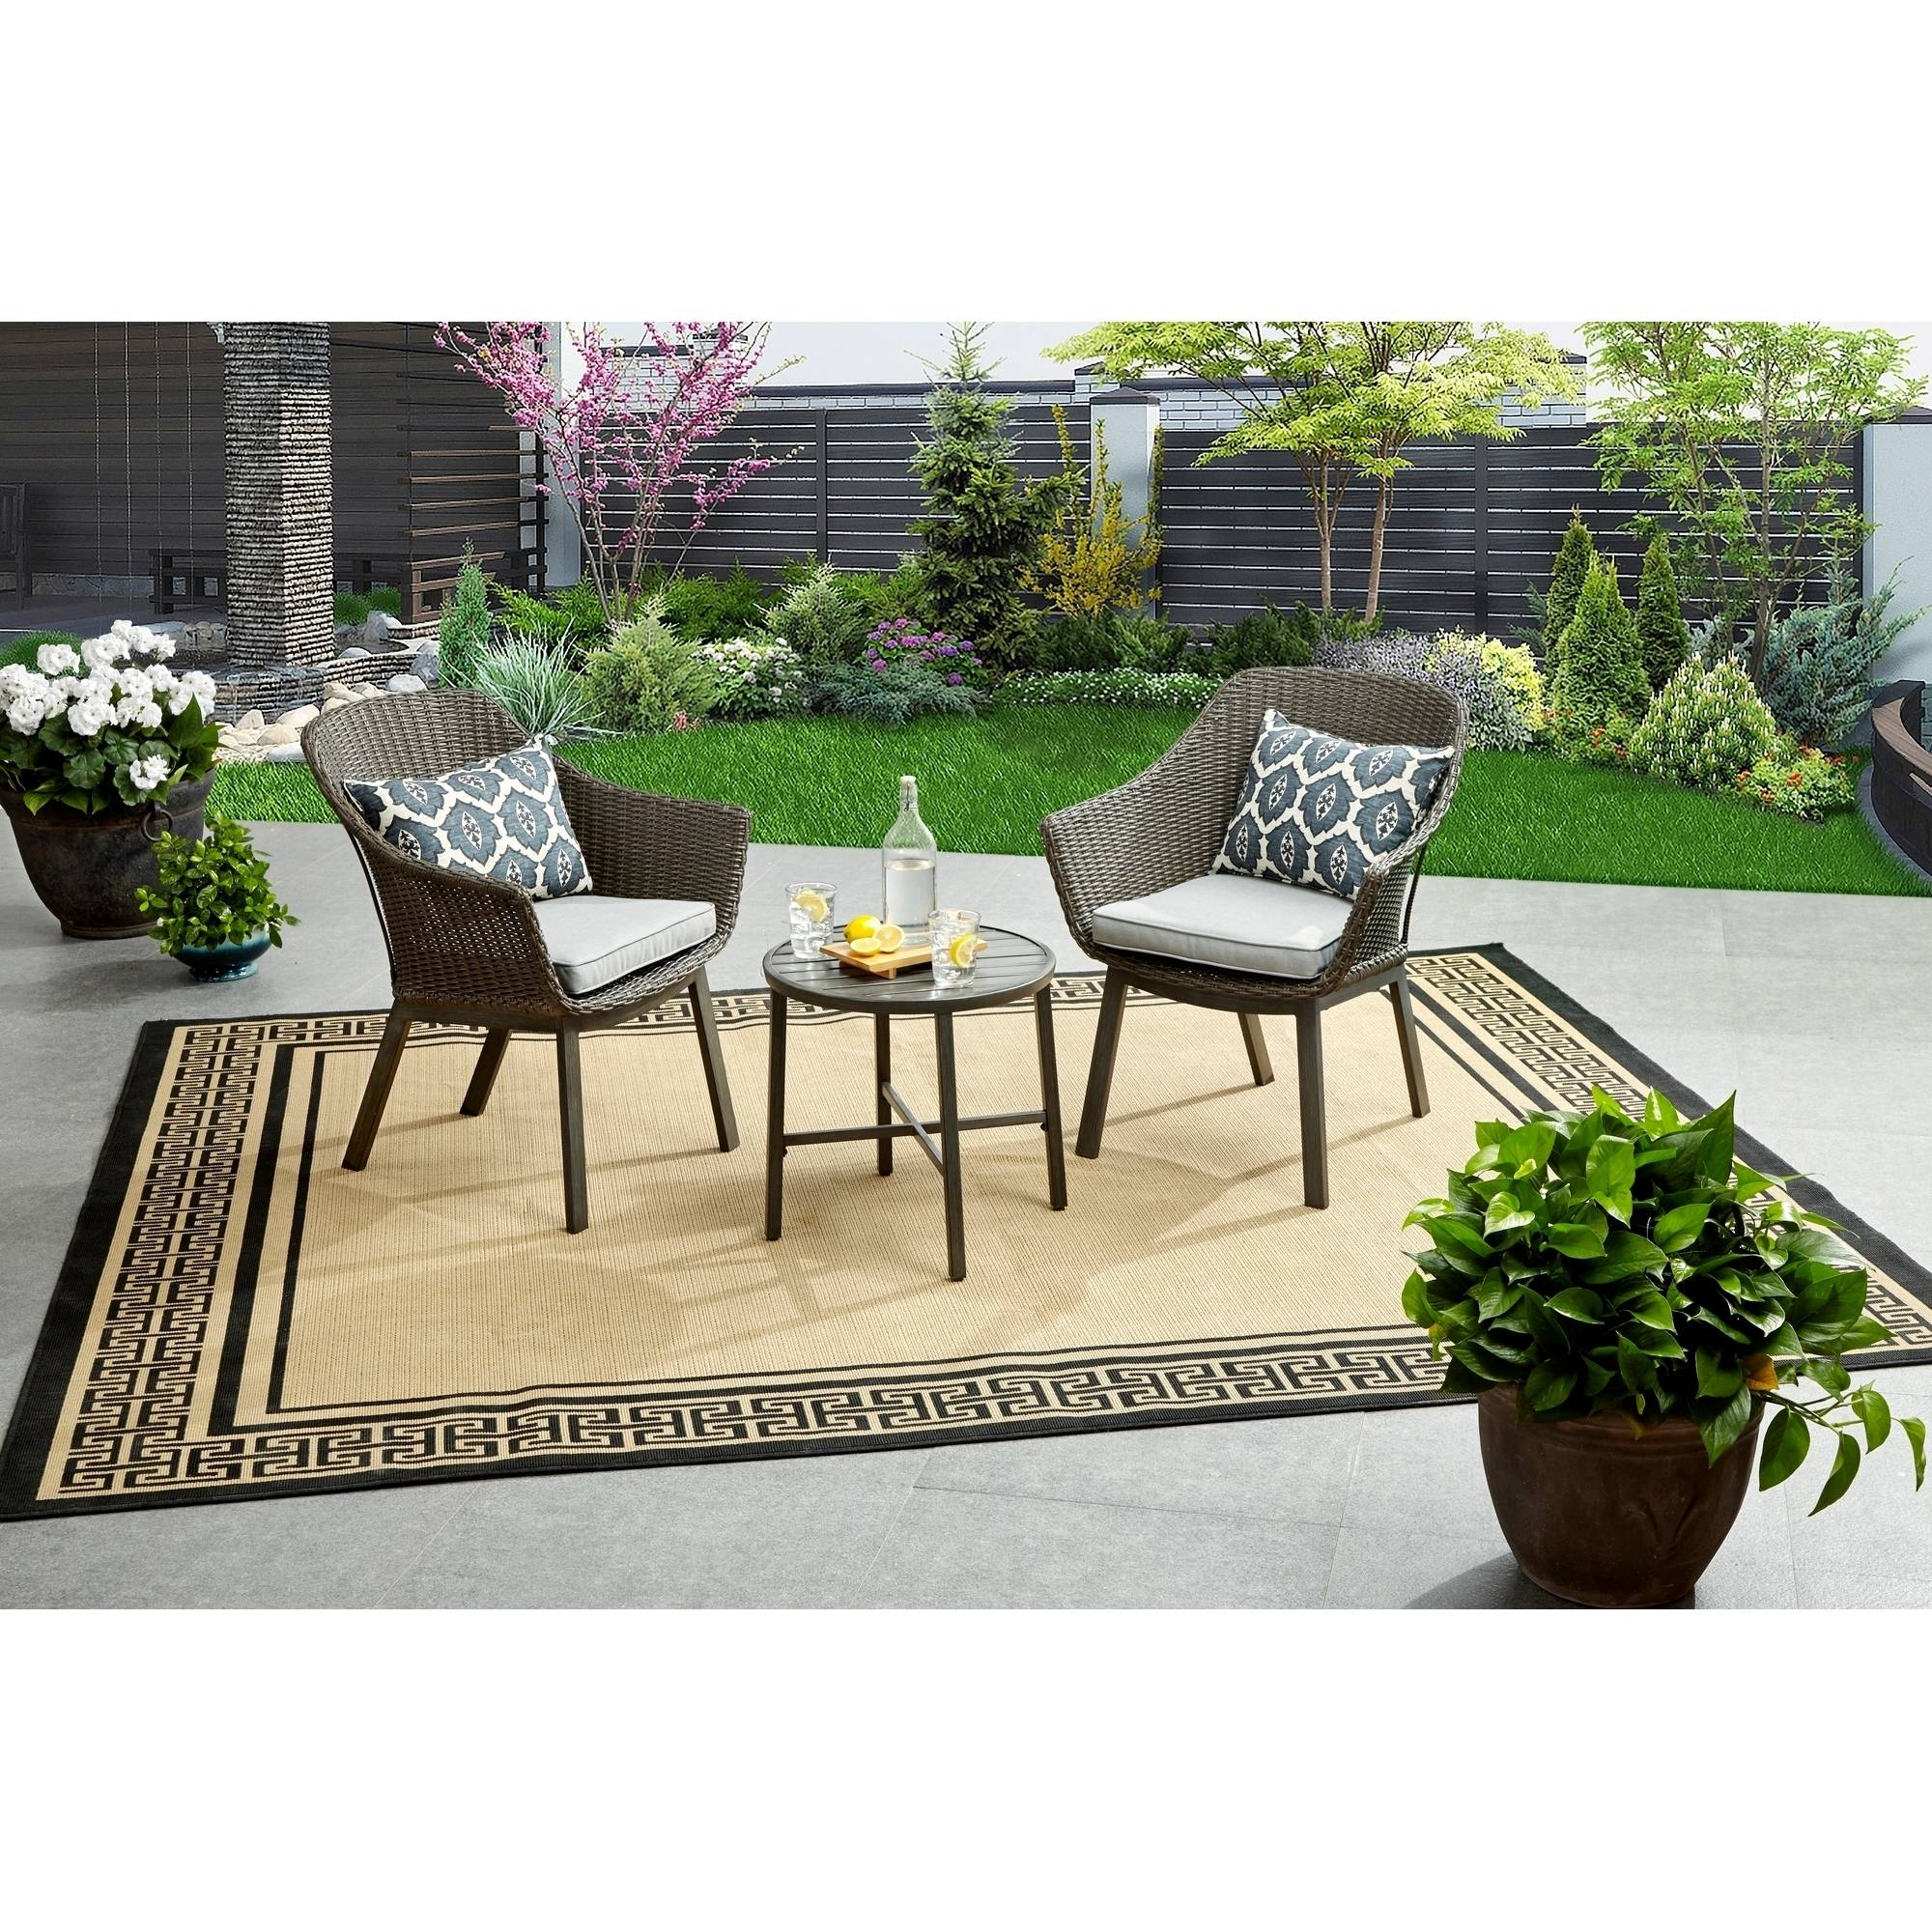 Better Homes and Gardens Cason Cove Contemporary Bistro Set by